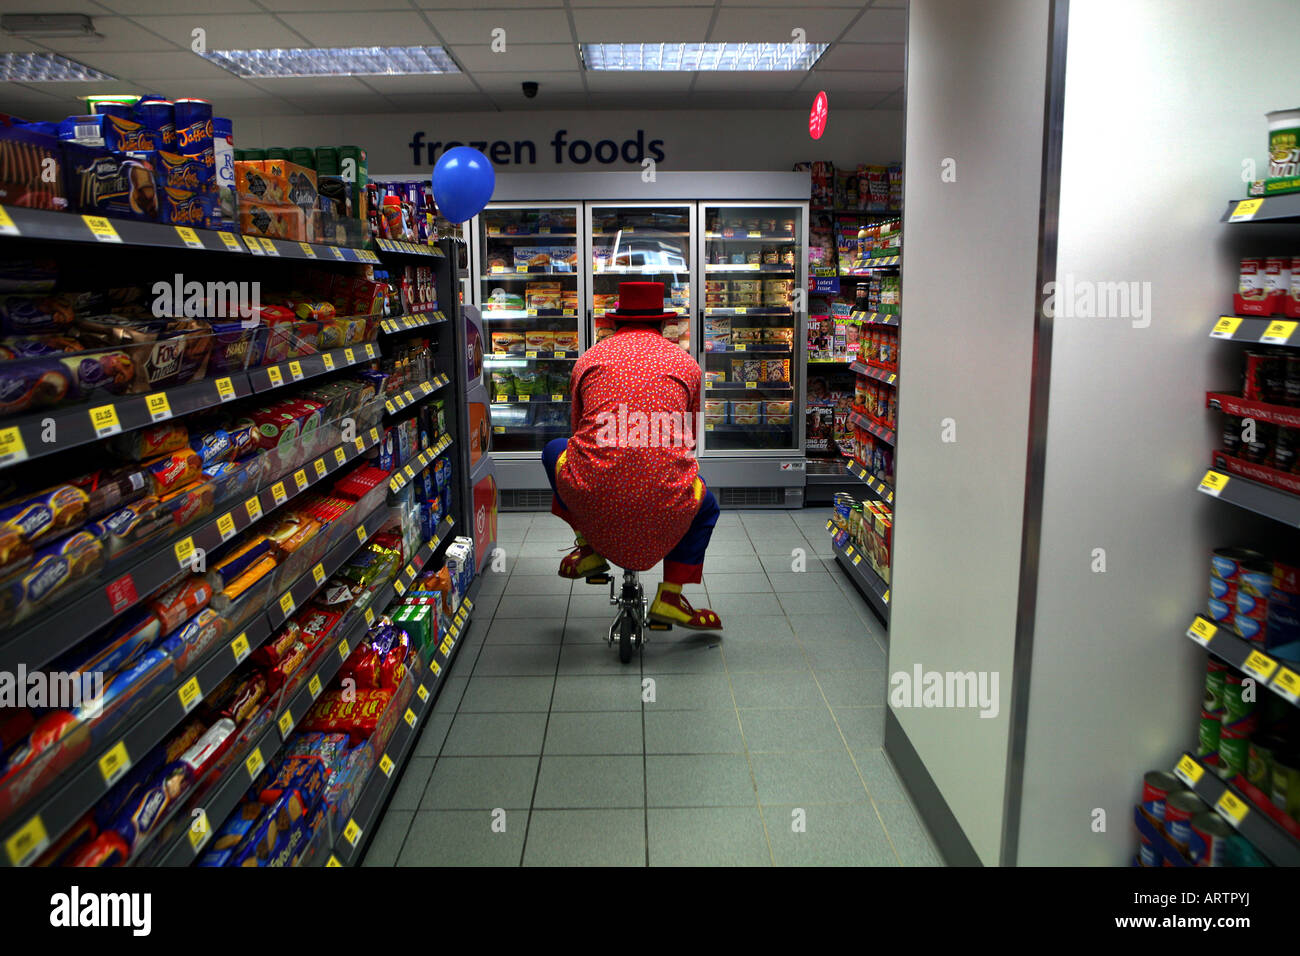 A clown cycles through a shopping aisle on his trick bike in a convenience store in the UK. - Stock Image